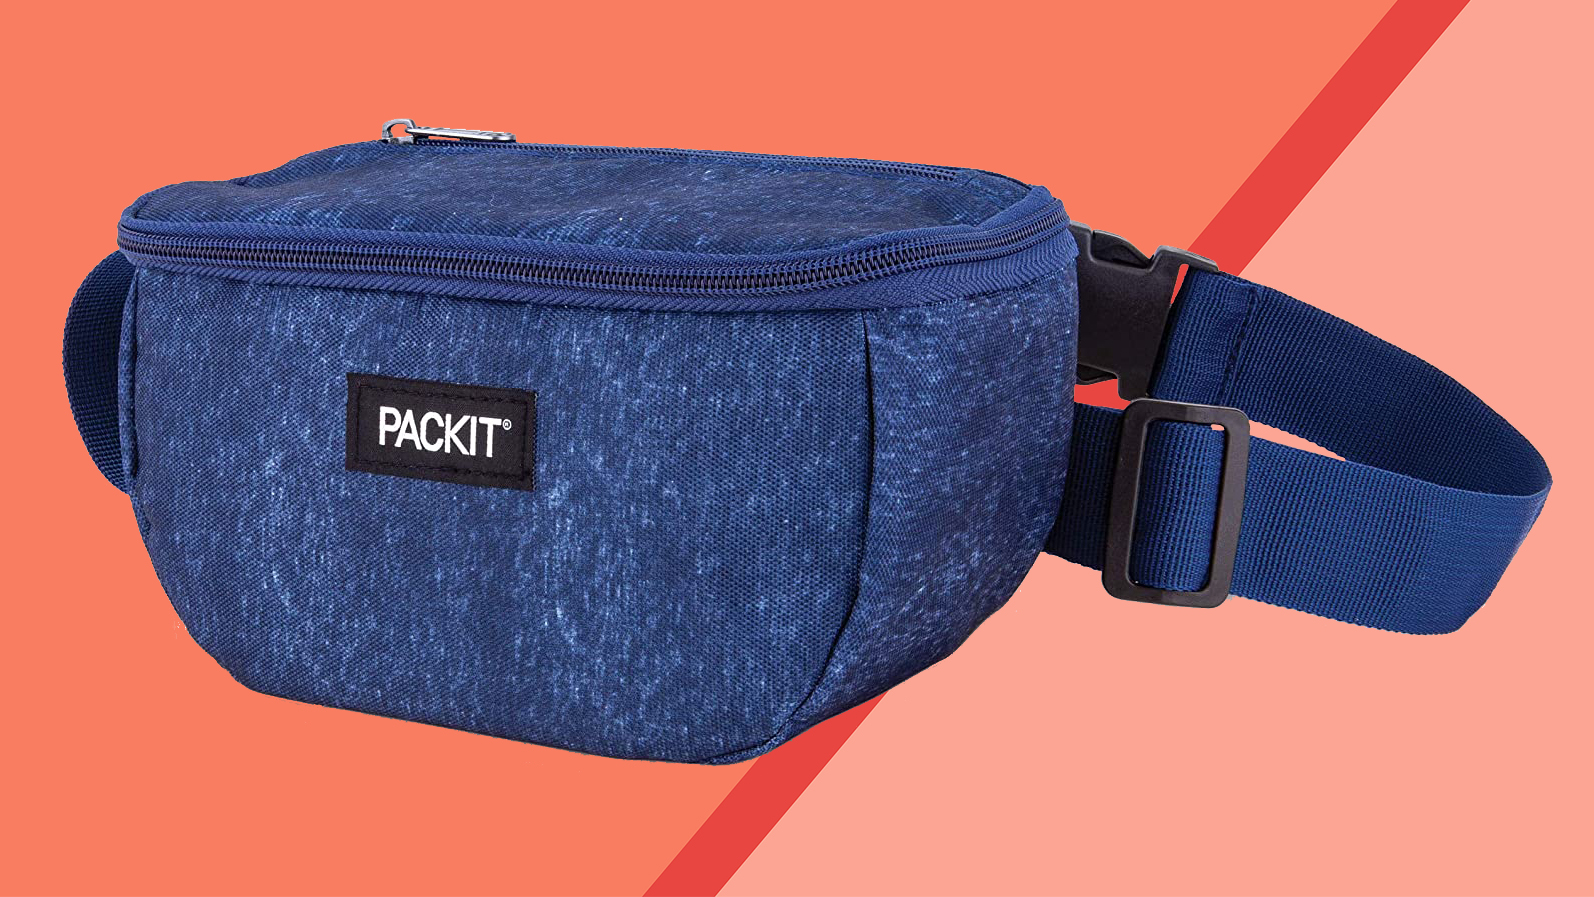 6 Clever Items 8/28/20 - PackIt waistpack